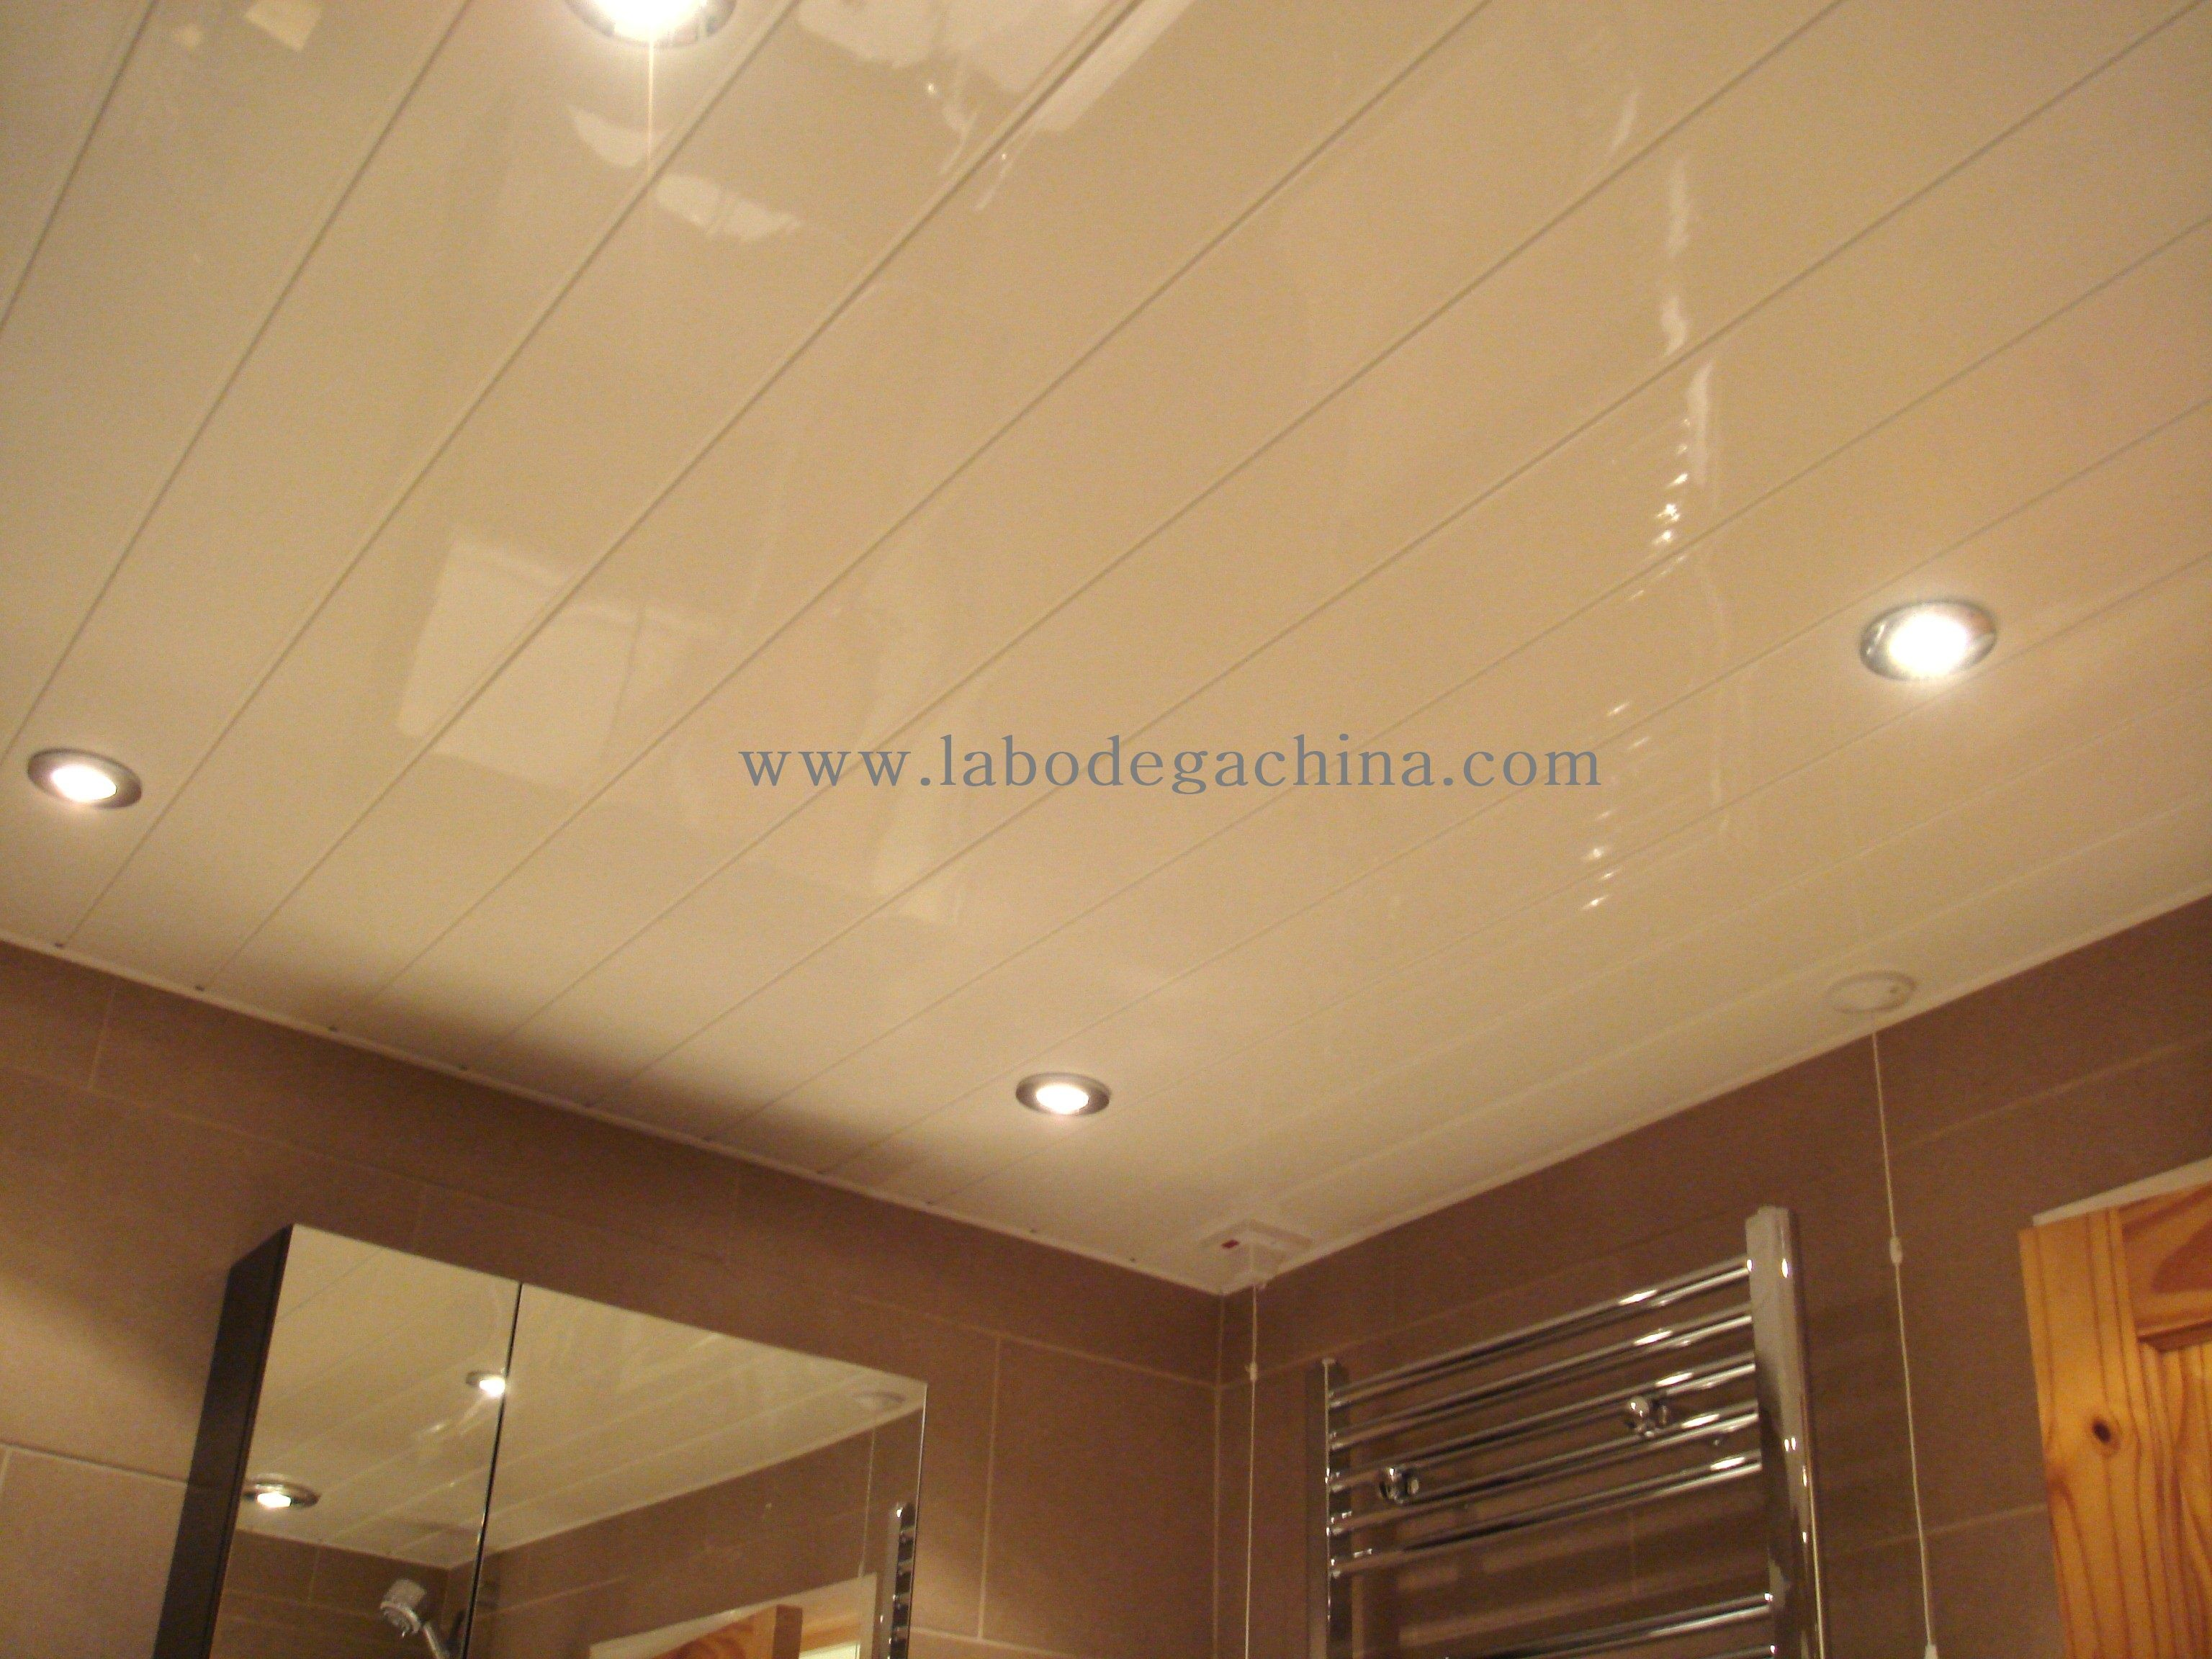 pvc ceiling china techos en pvc www. Black Bedroom Furniture Sets. Home Design Ideas